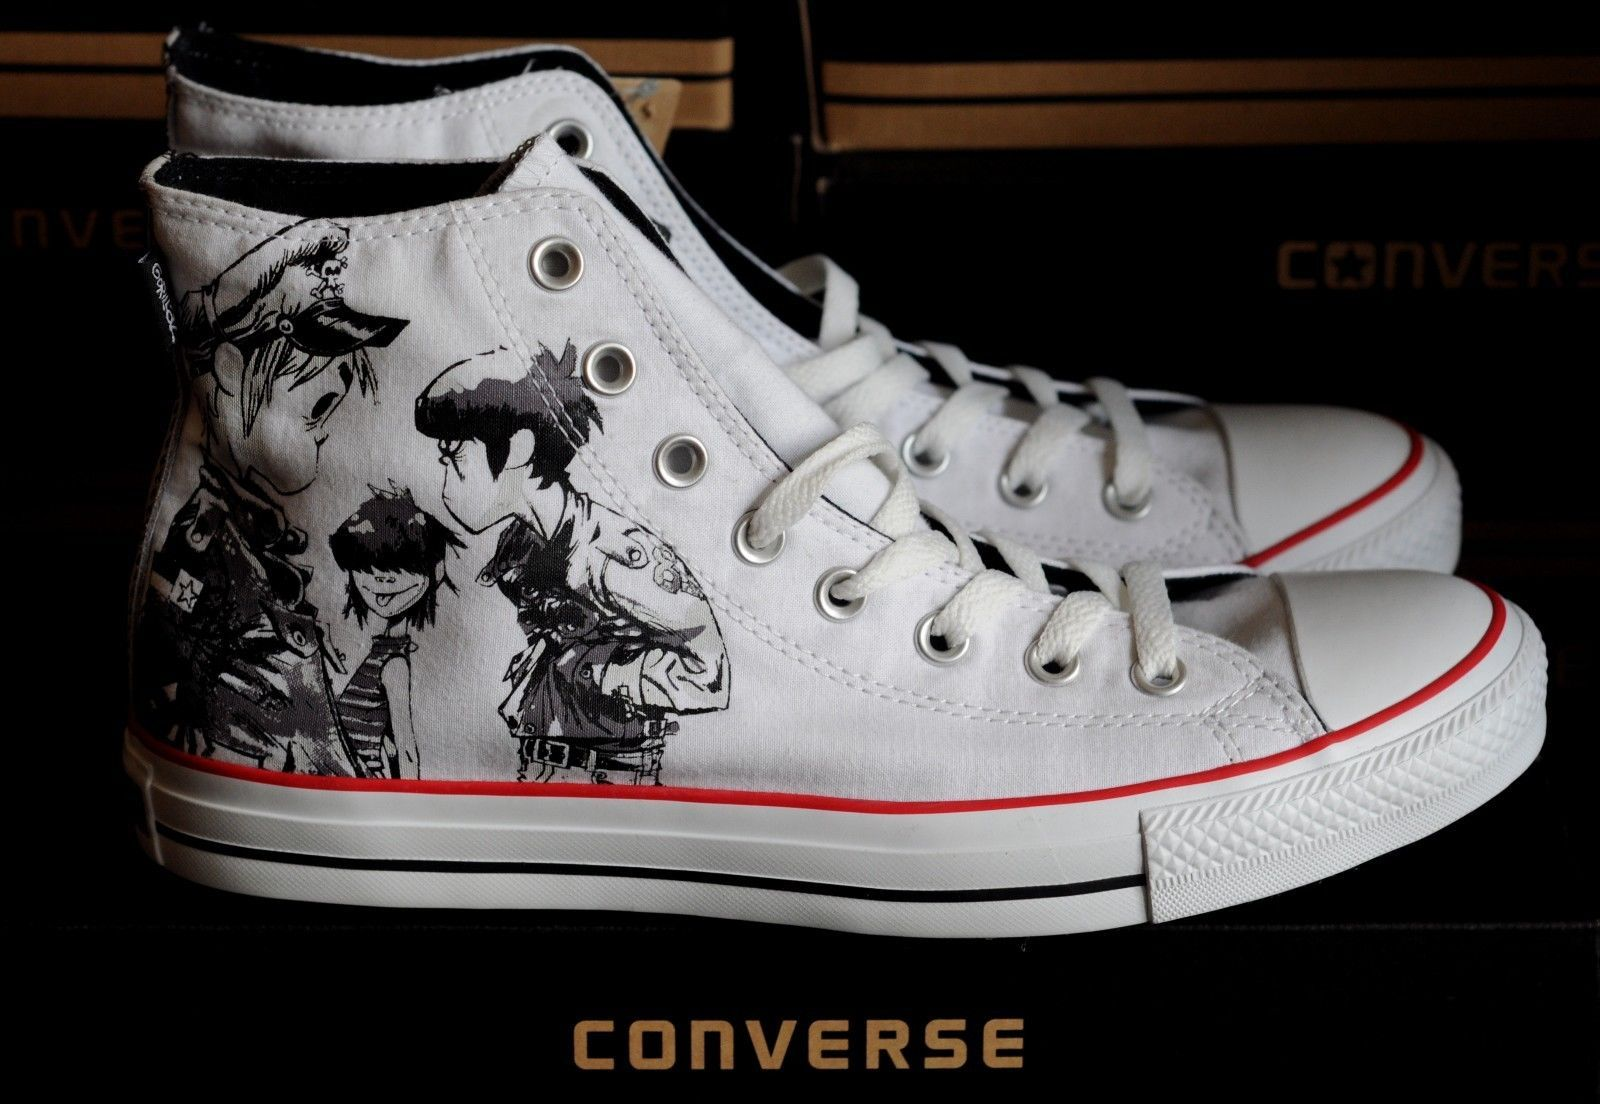 gorillaz converse all star chuck taylor limited edition. Black Bedroom Furniture Sets. Home Design Ideas